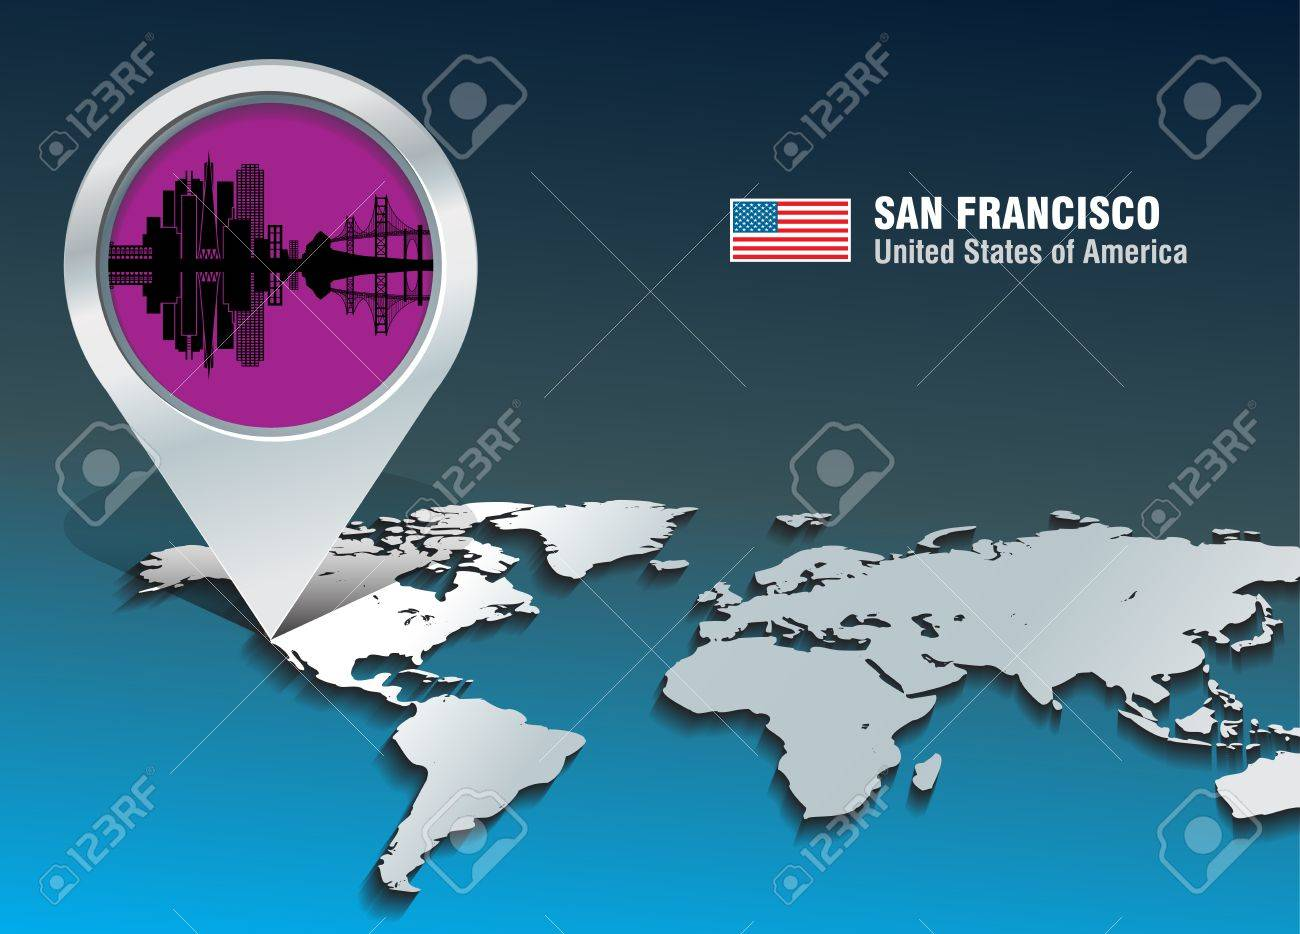 Map Pin With San Francisco Skyline Vector Illustration Royalty